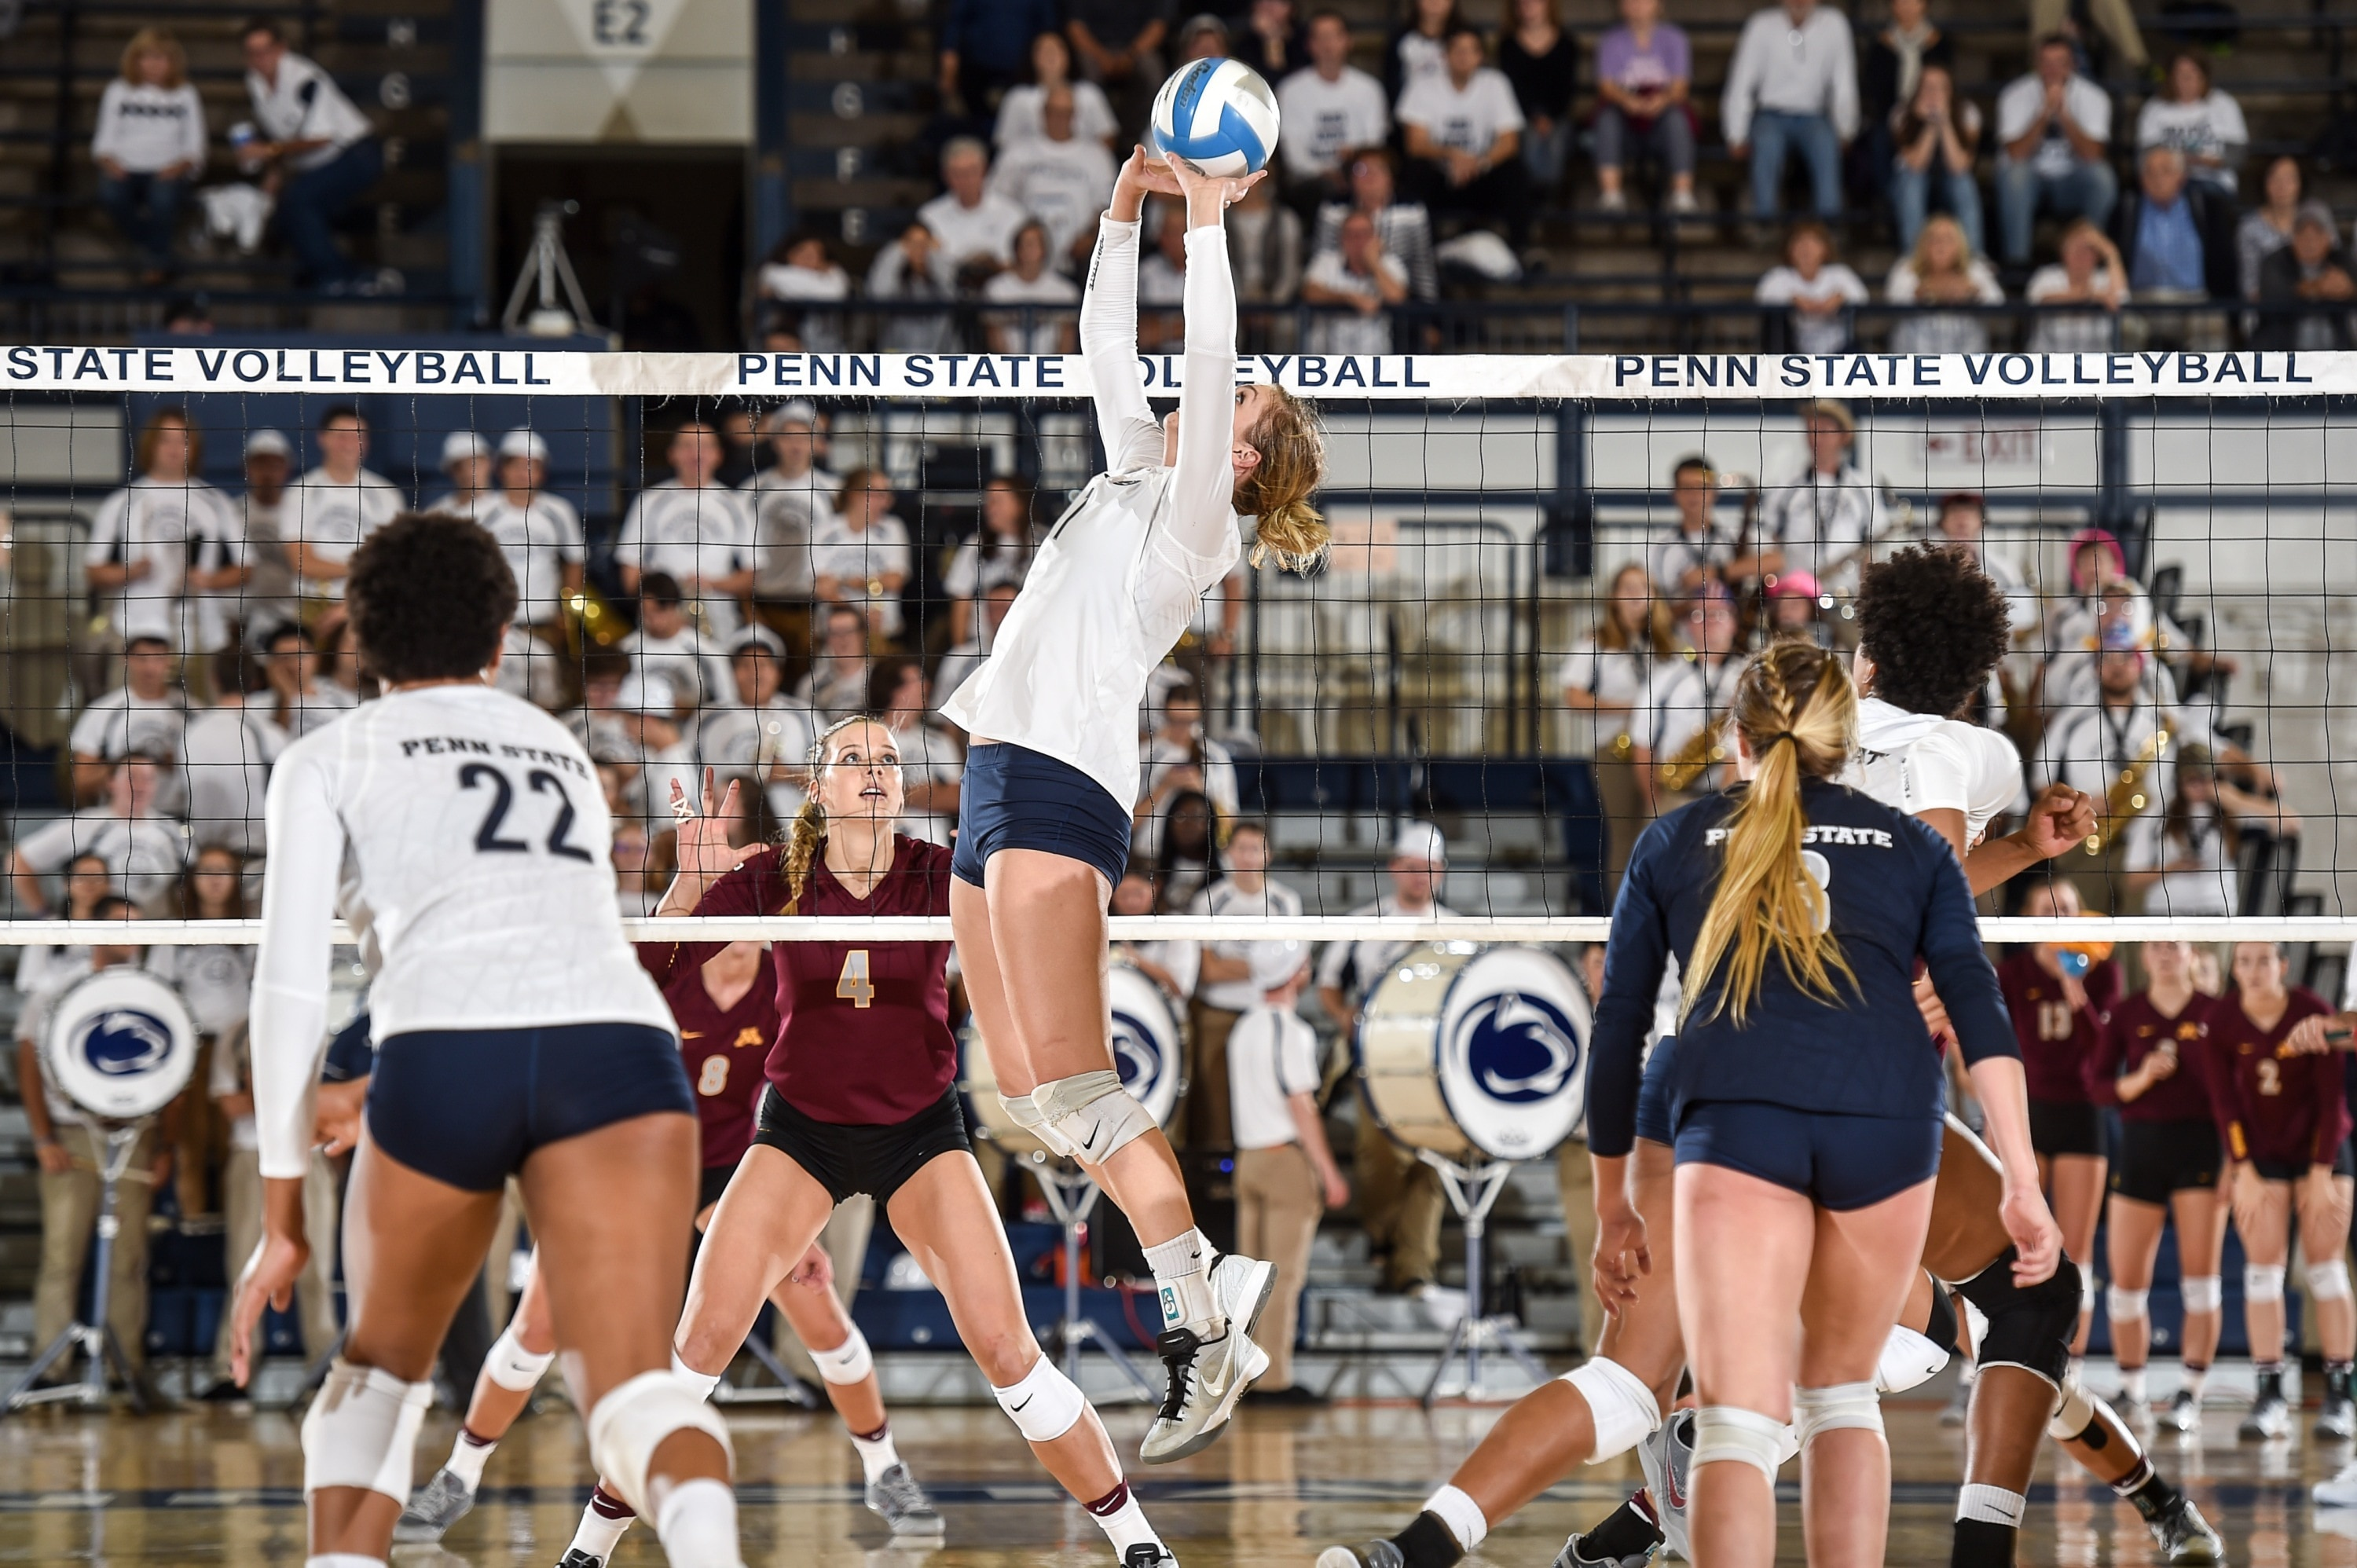 Nittany Lions Undefeated So Far Using Their Two Setter Approach Ncaa Com